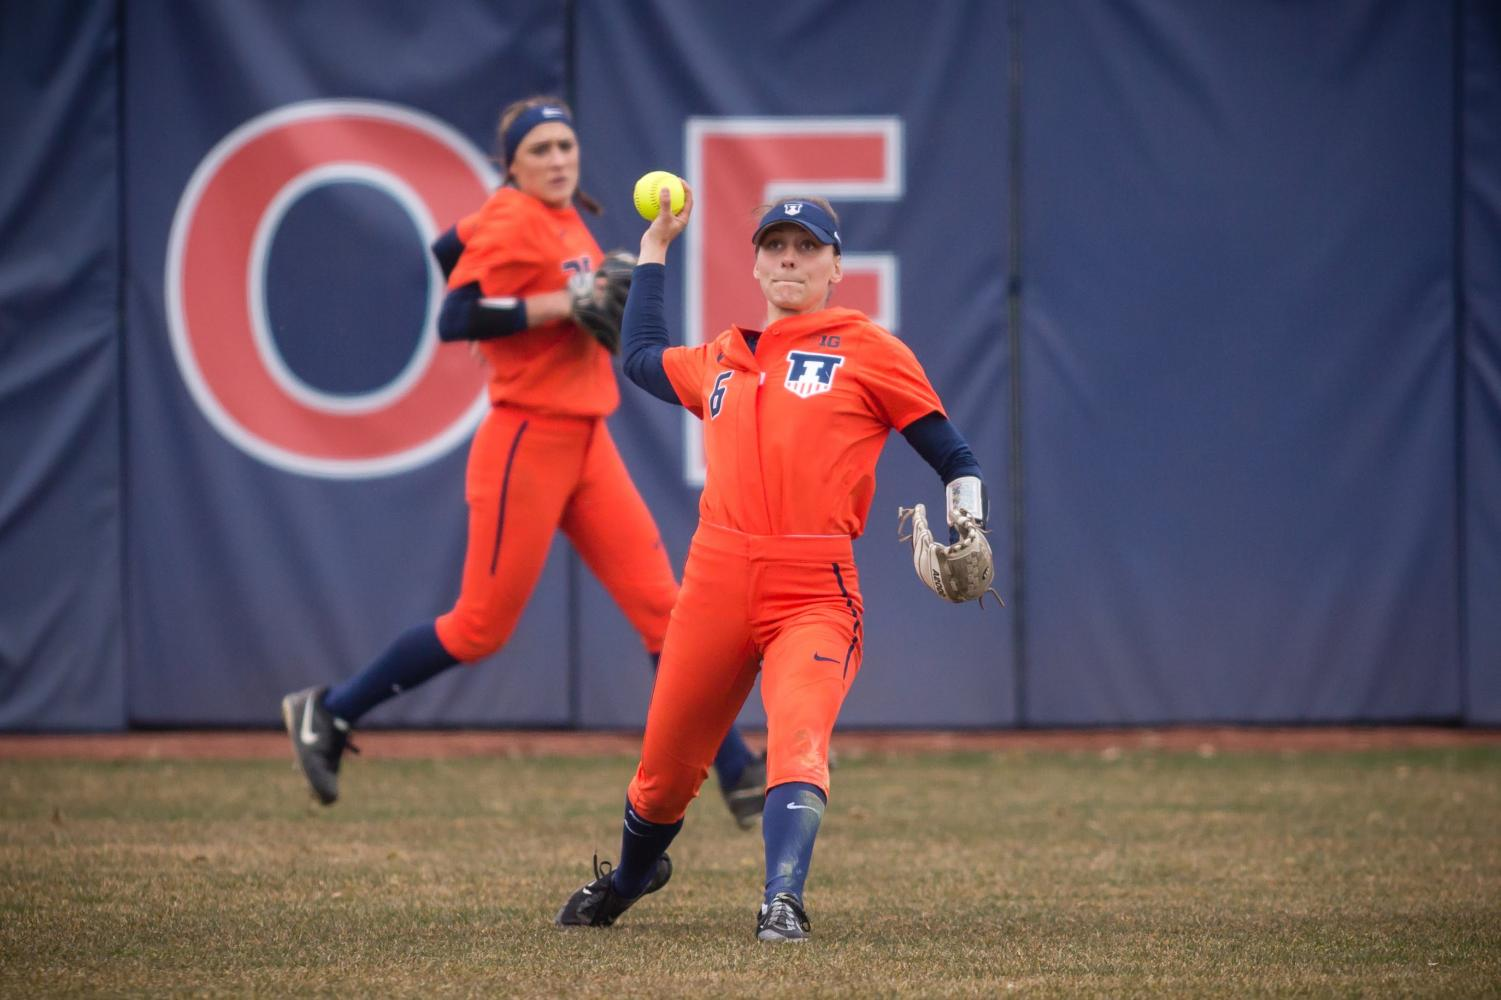 Illinois outfielder Kiana Sherlund (6) throws the ball in from center field during the game against Northwestern at Eichelberger Field on Wednesday, Mar. 28, 2018.